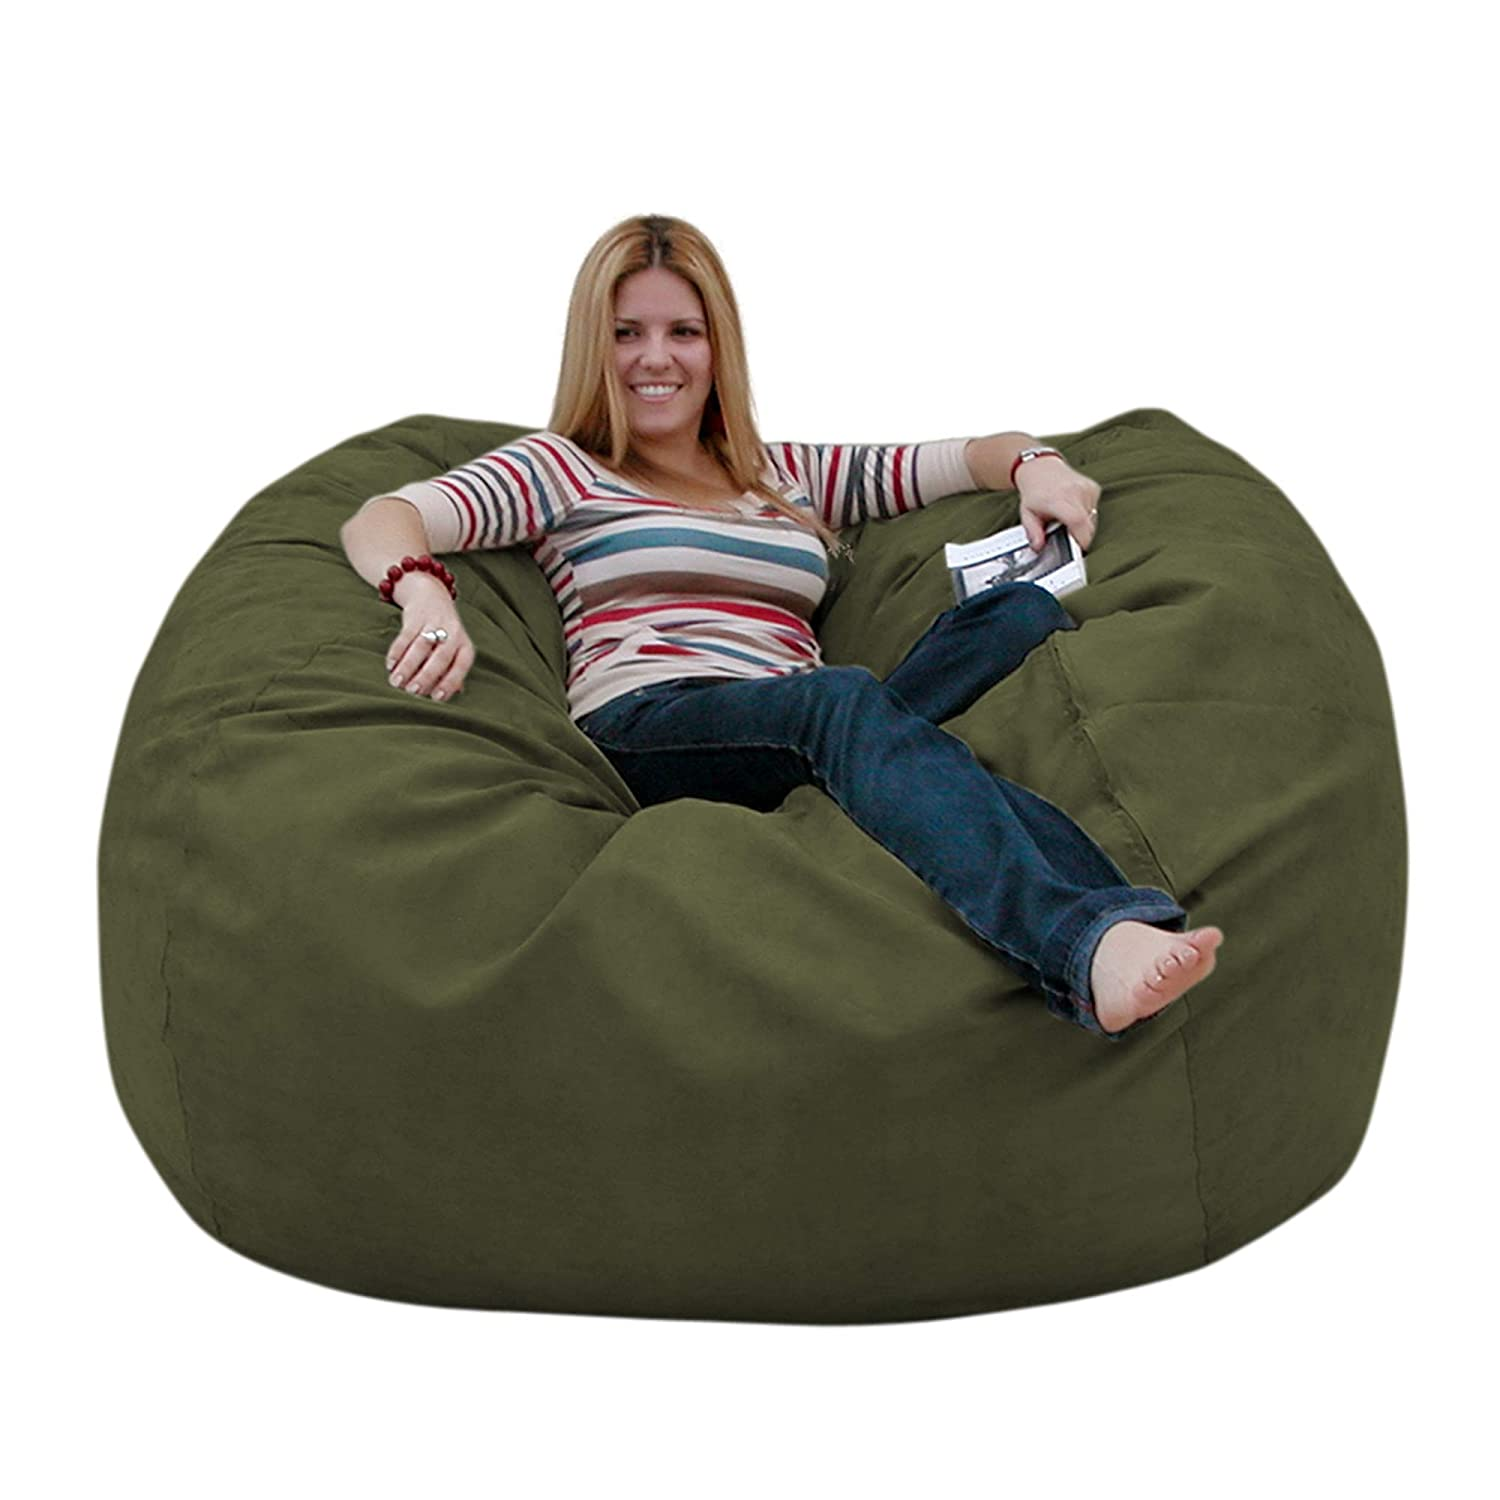 Olive 5 feet Cozy Sack 4-Feet Bean Bag Chair, Large, Navy